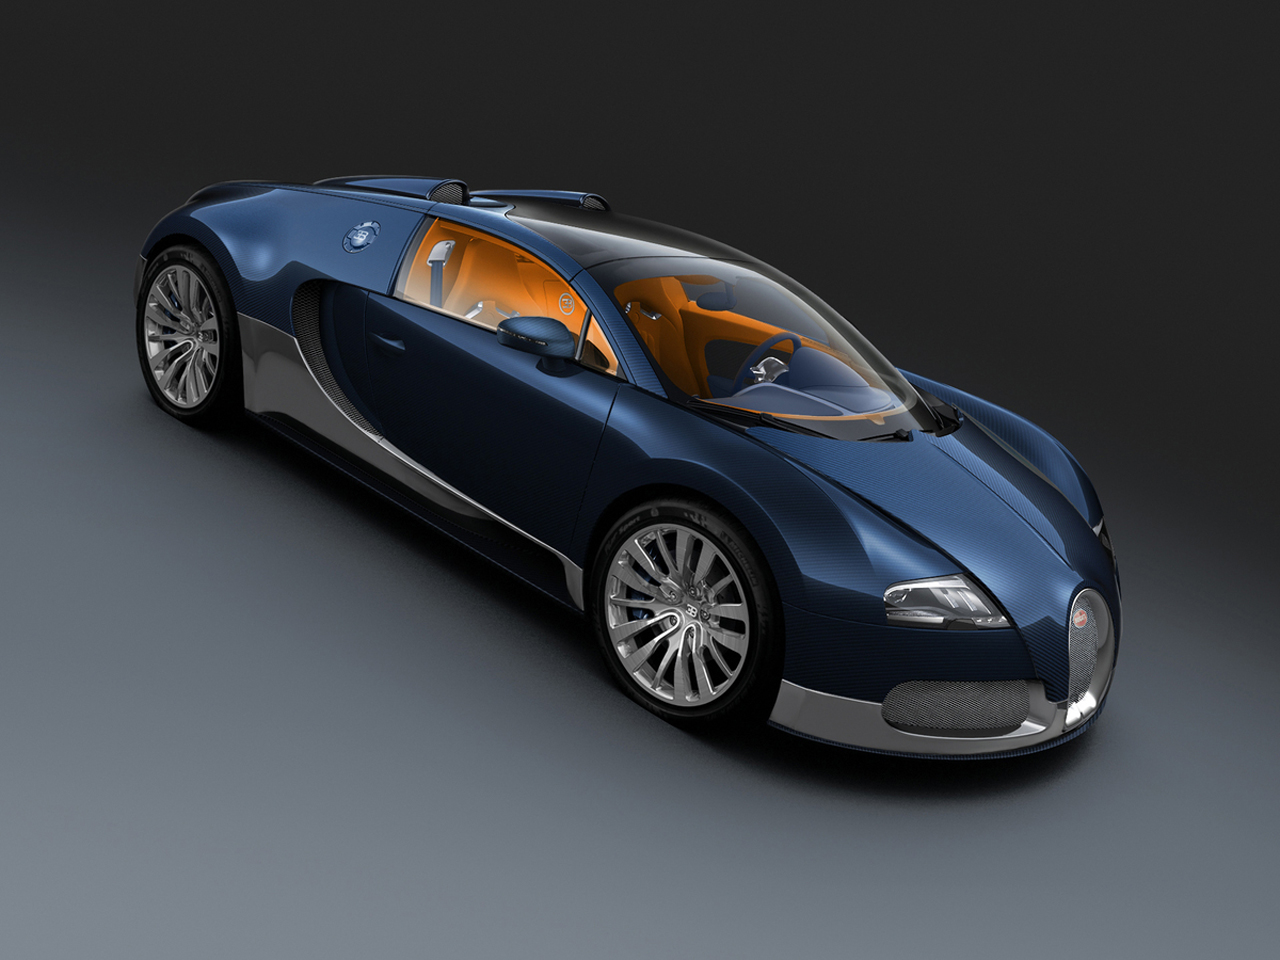 Bugatti Veyron Grand Sport gets special editions in Dubai